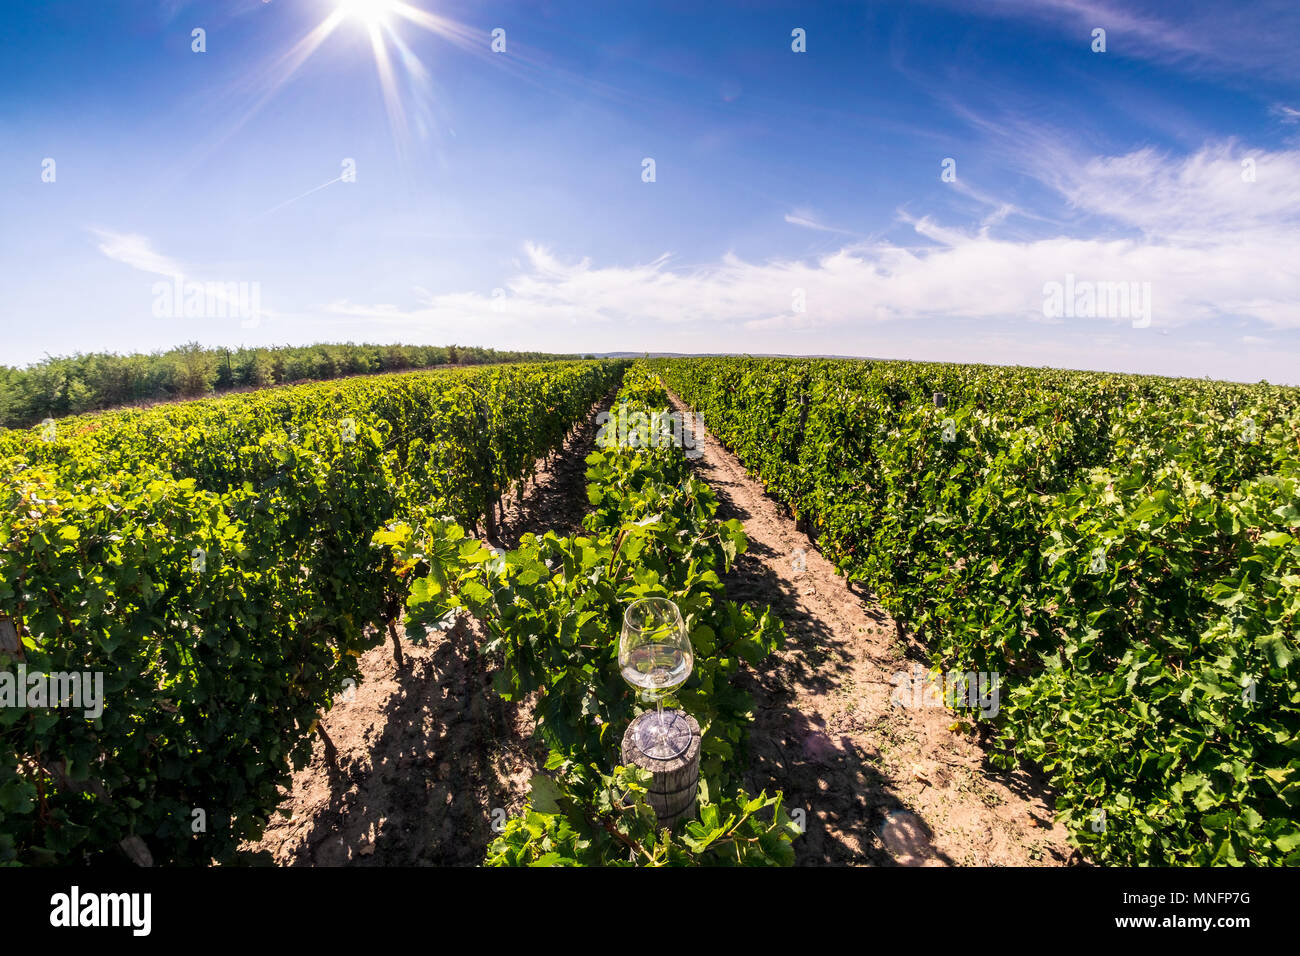 Glass of wine in the vineyard, panoramic view from above in the middle of the autumn harvesting season - Stock Image